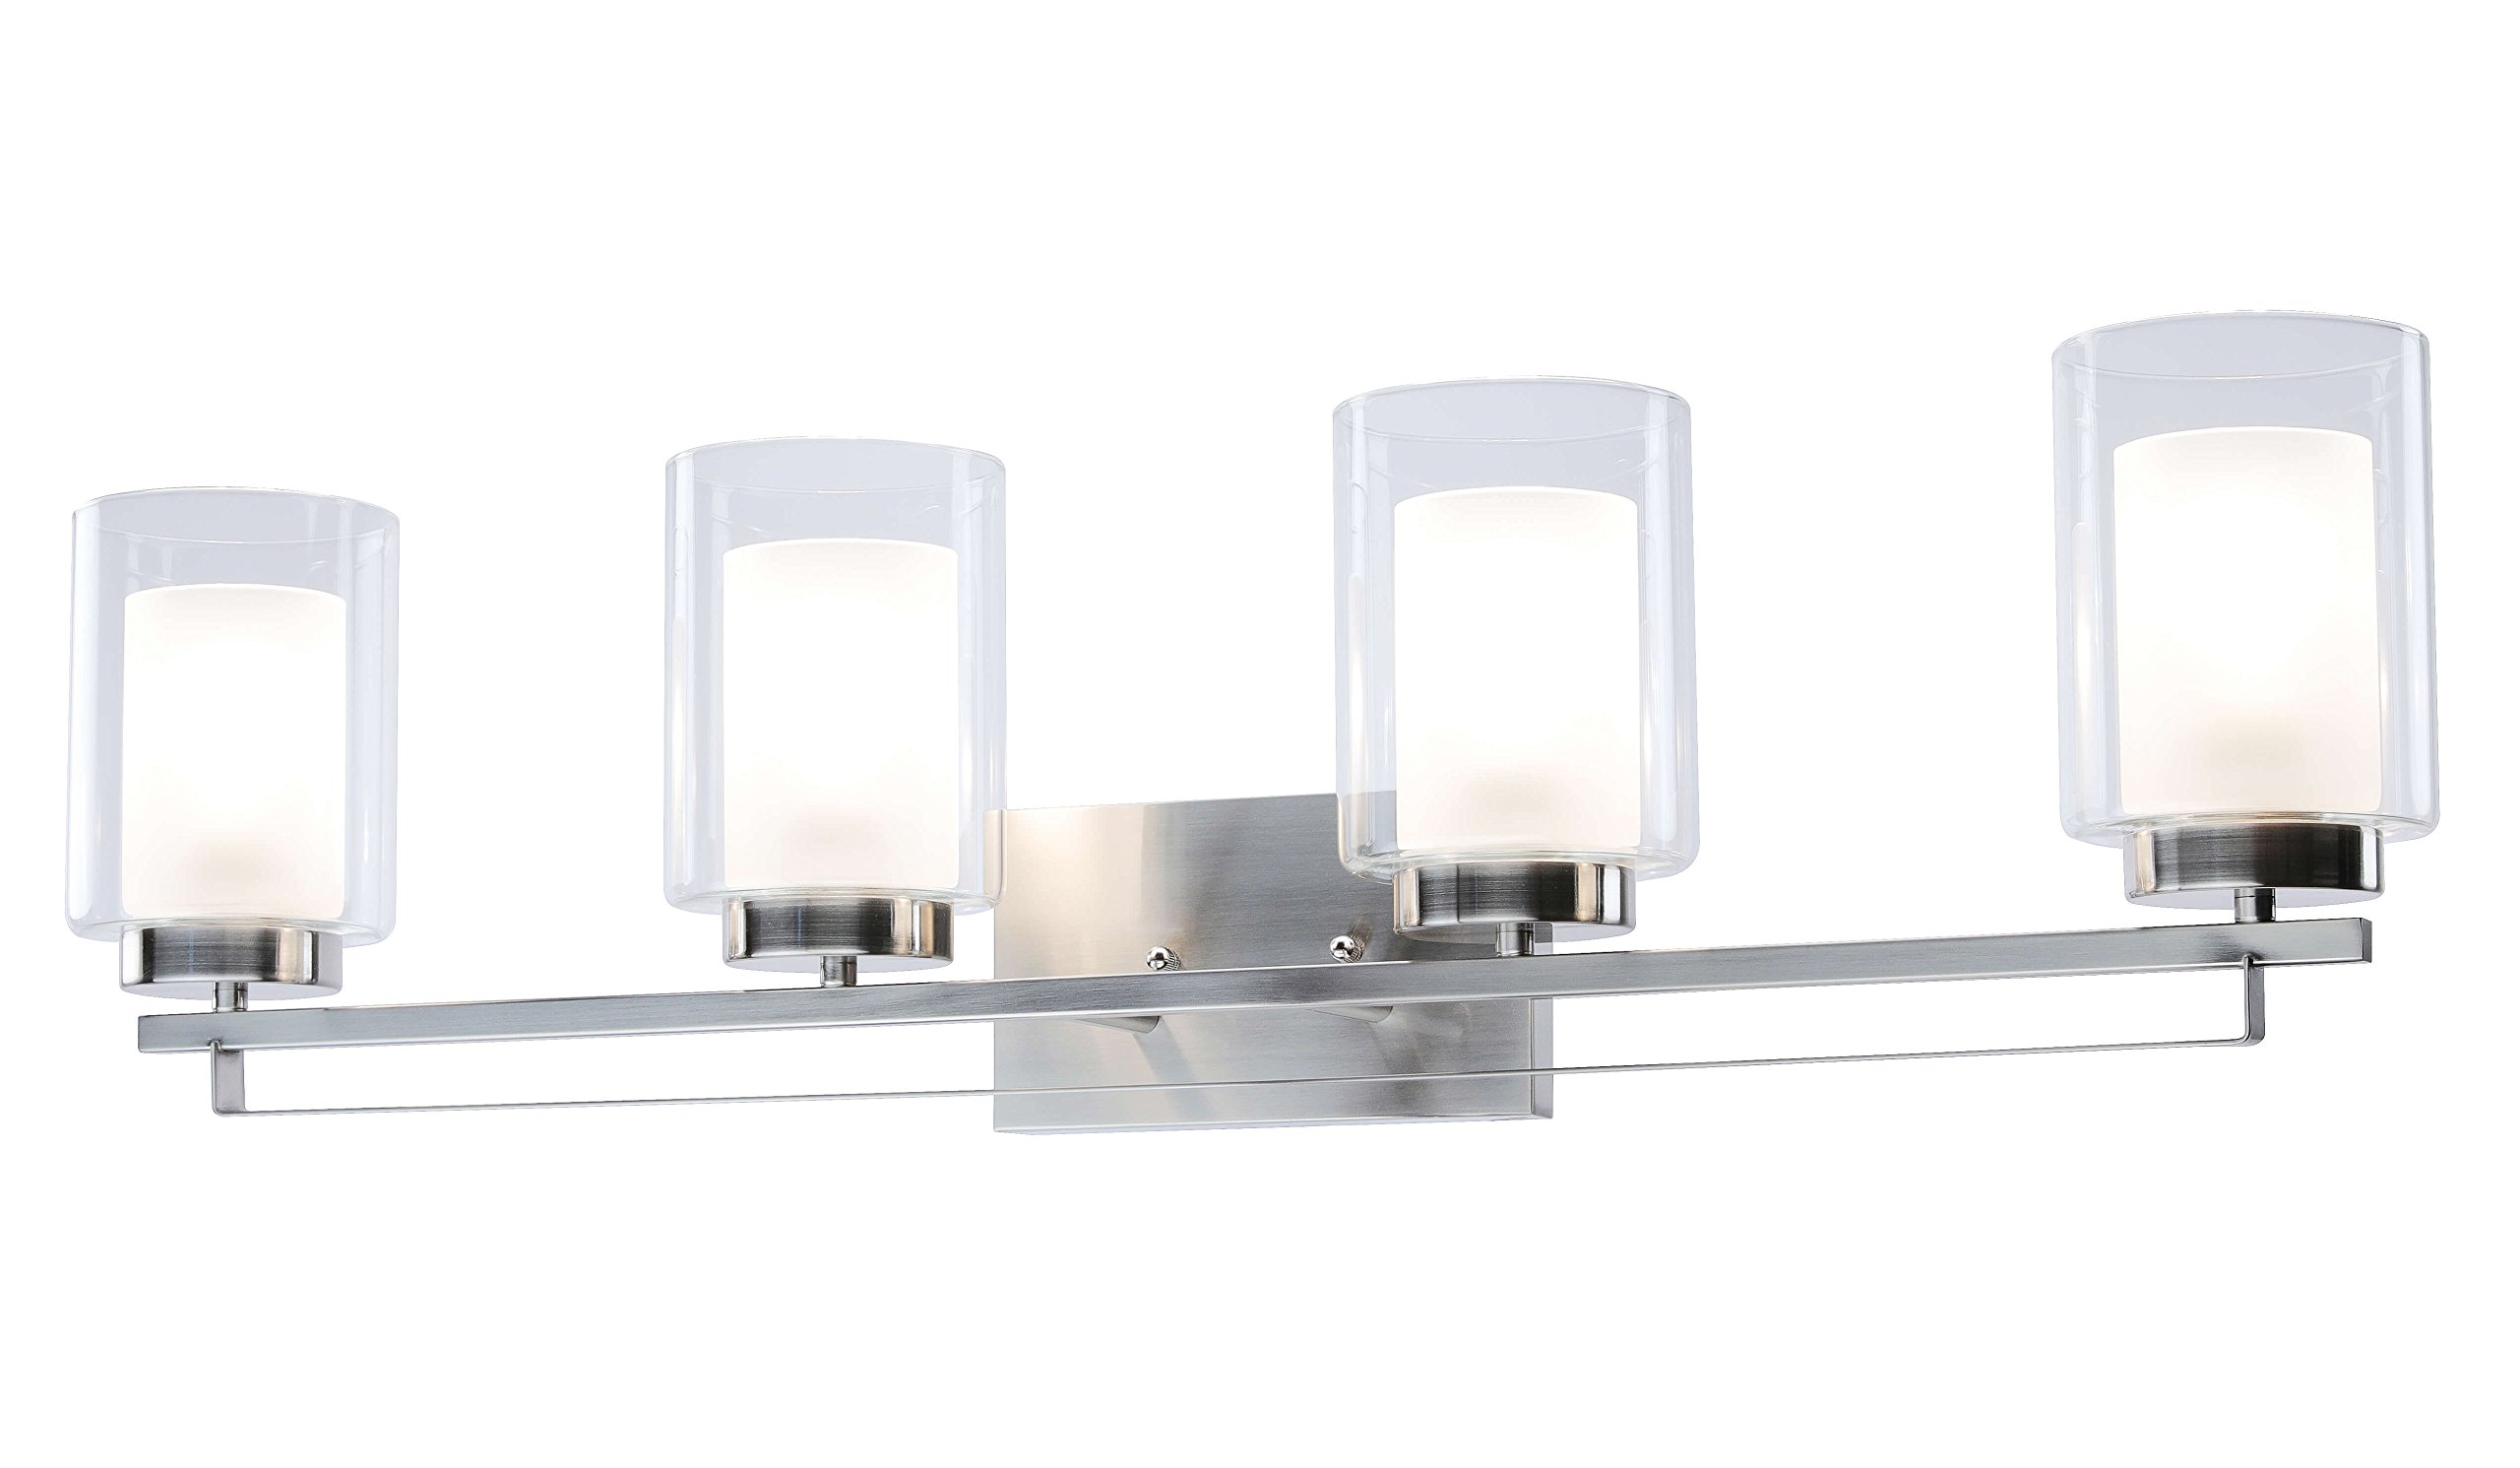 Wall Light 4 Light Bathroom Vanity Lighting with Dual Glass Shade in Brushed Nickel Indoor Modern Wall Mount Light for Bathroom & Kitchen XiNBEi-Lighting XB-W1195-4-BN by XiNBEi Lighting (Image #1)